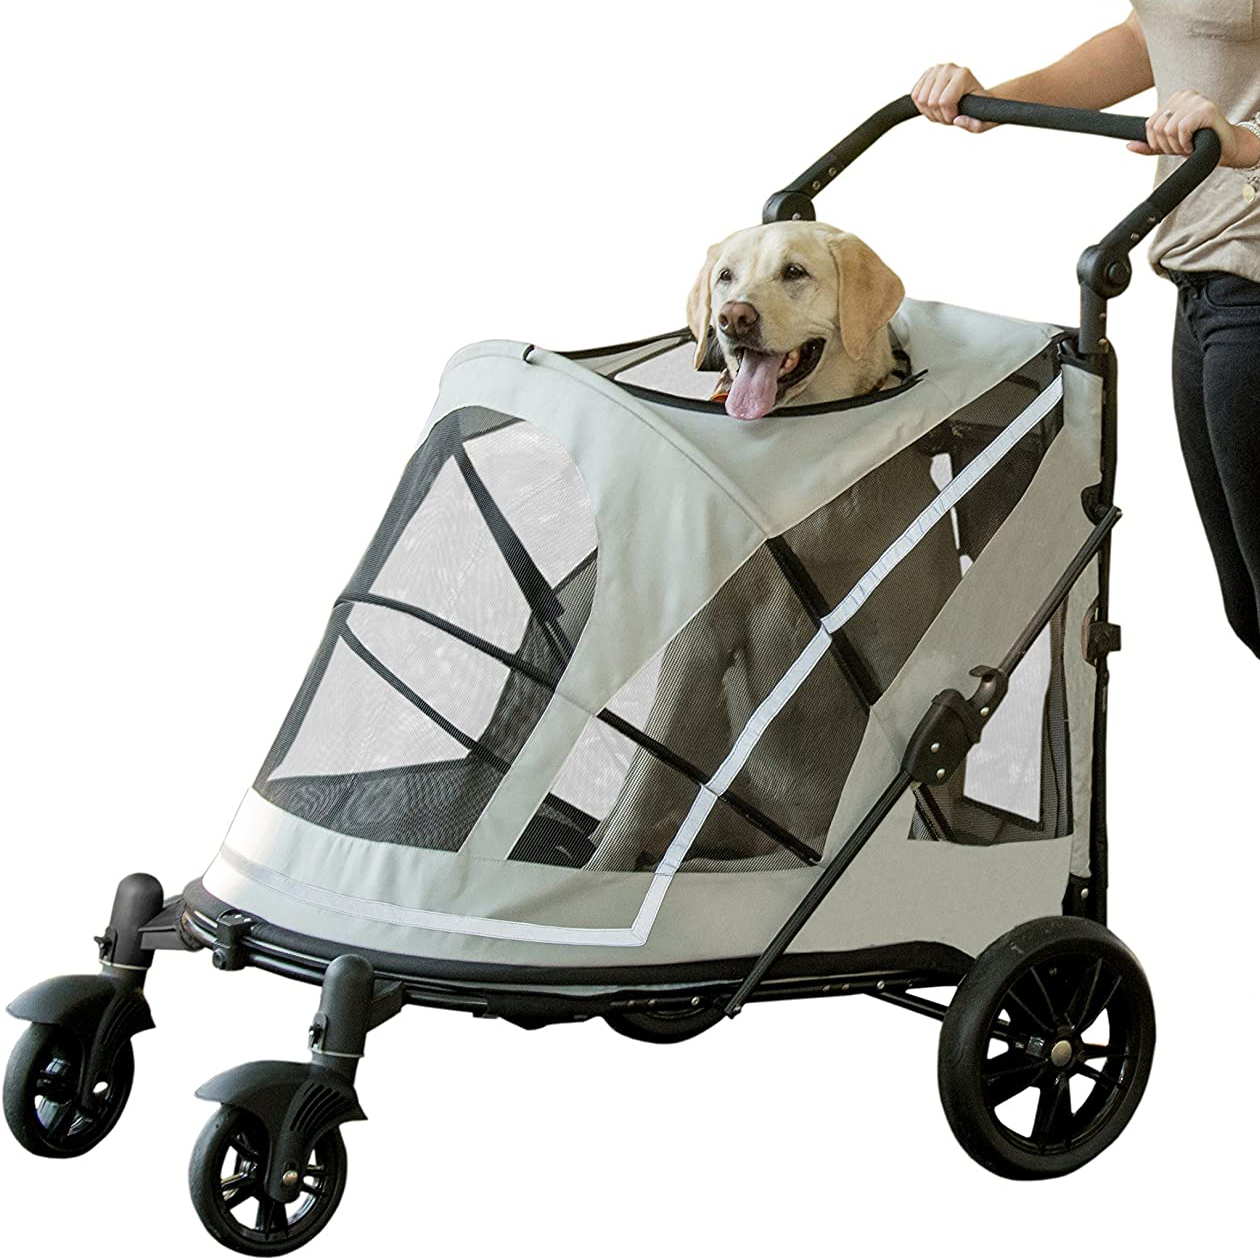 no-zip-expedition-zipperless-entry-pet-stroller